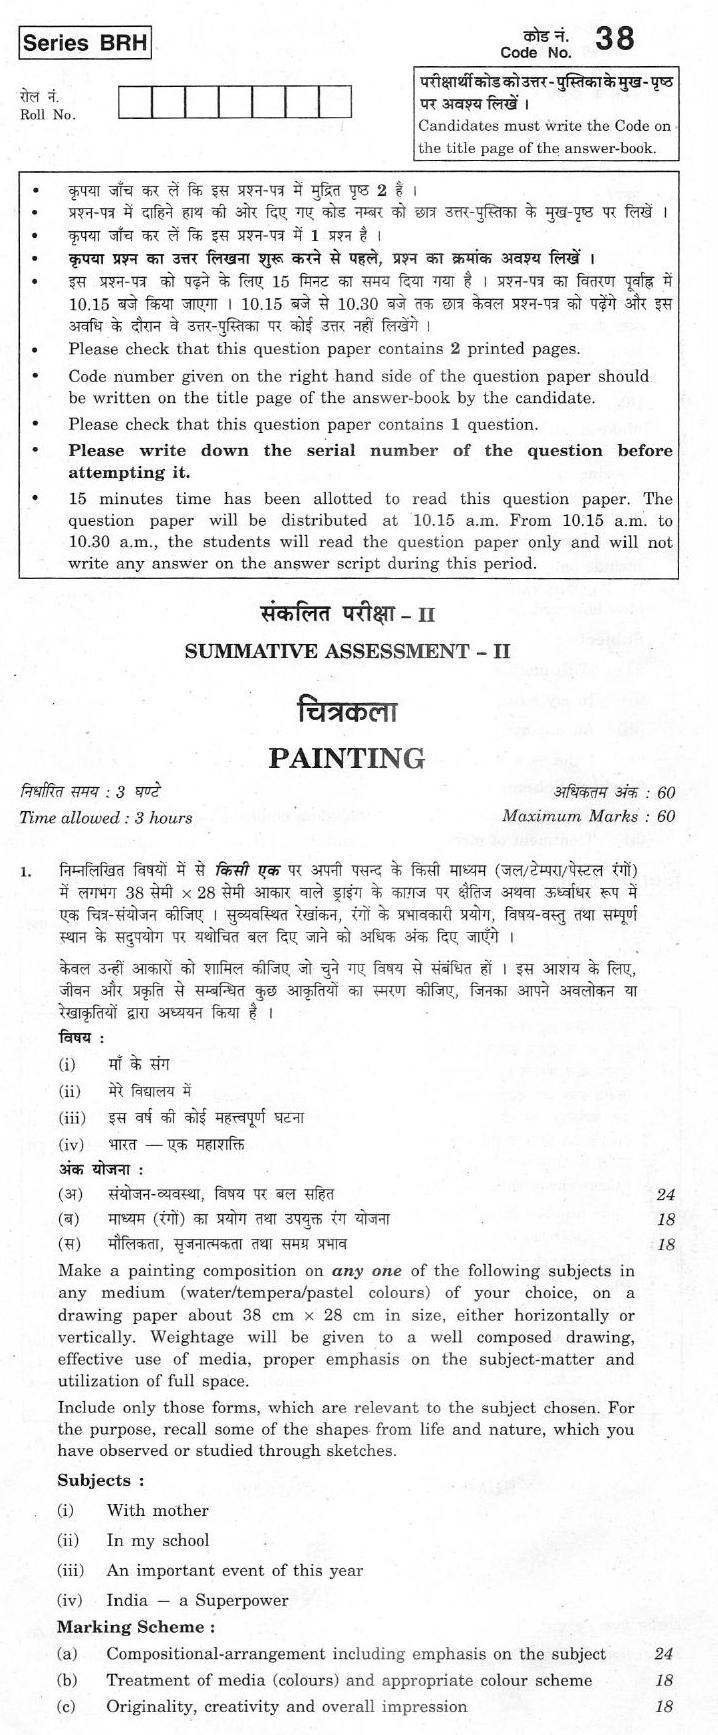 CBSE Class X Previous Year Question Papers 2012 Painting